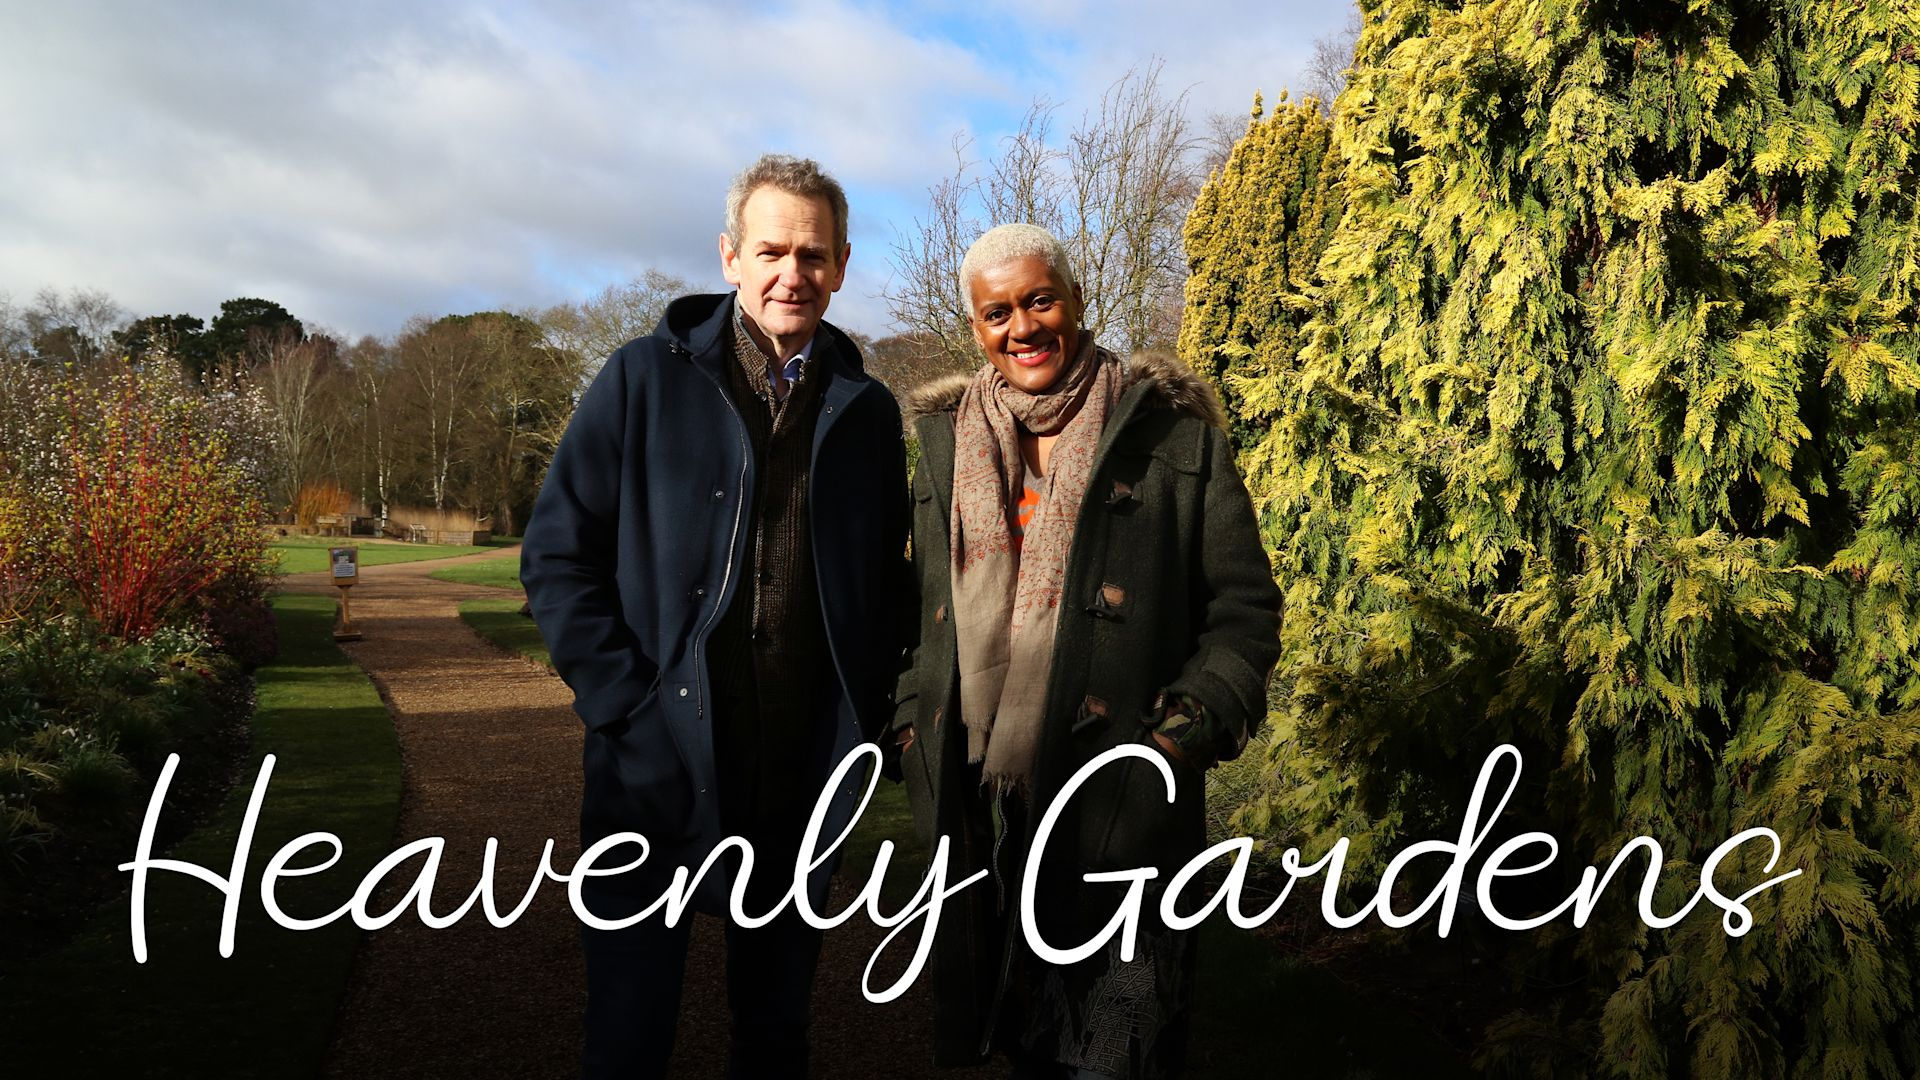 Heavenly Gardens - Series 1